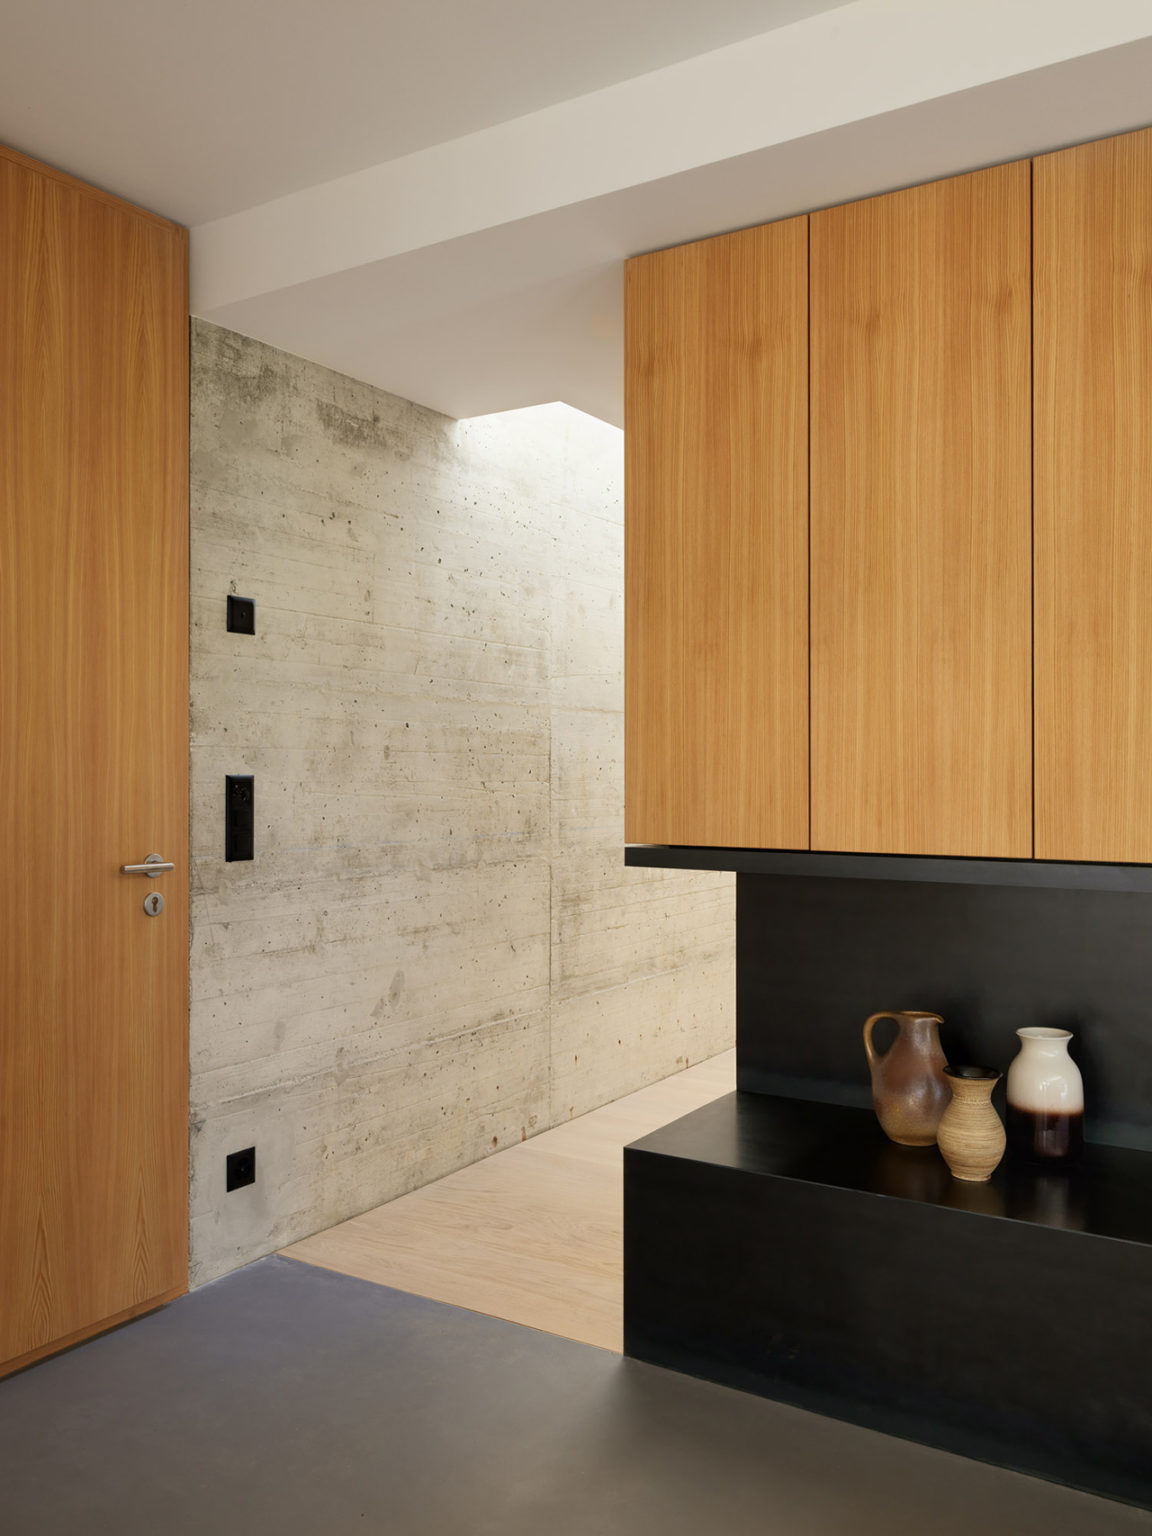 Concrete that was used for exterior decor is also used insidde and that ties the spaces